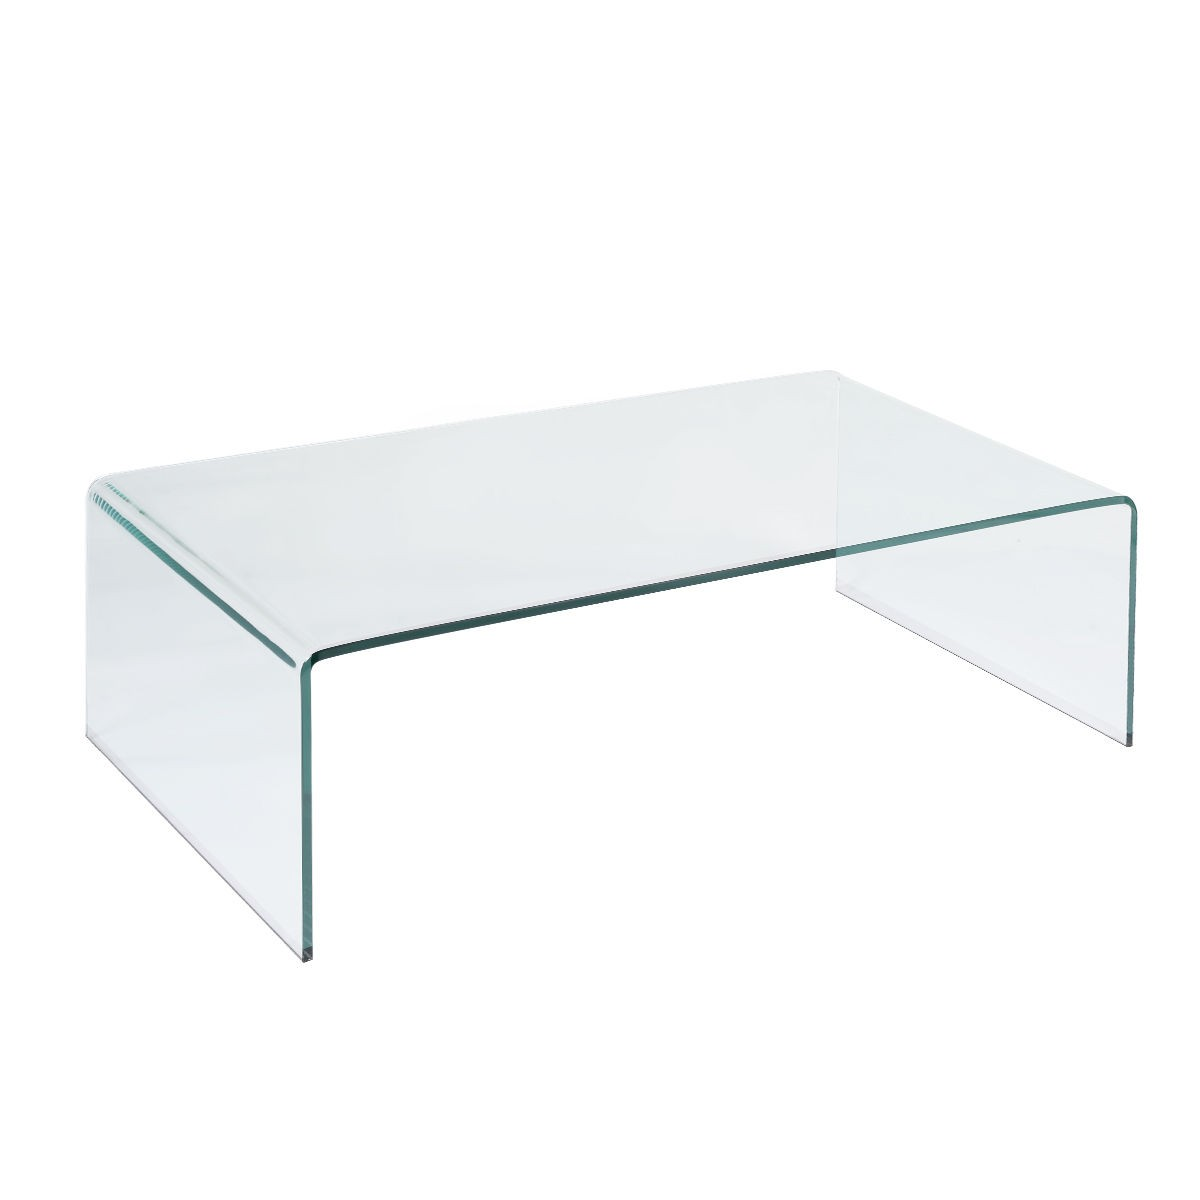 New tempered glass coffee table accent cocktail side table for Tempered glass coffee table